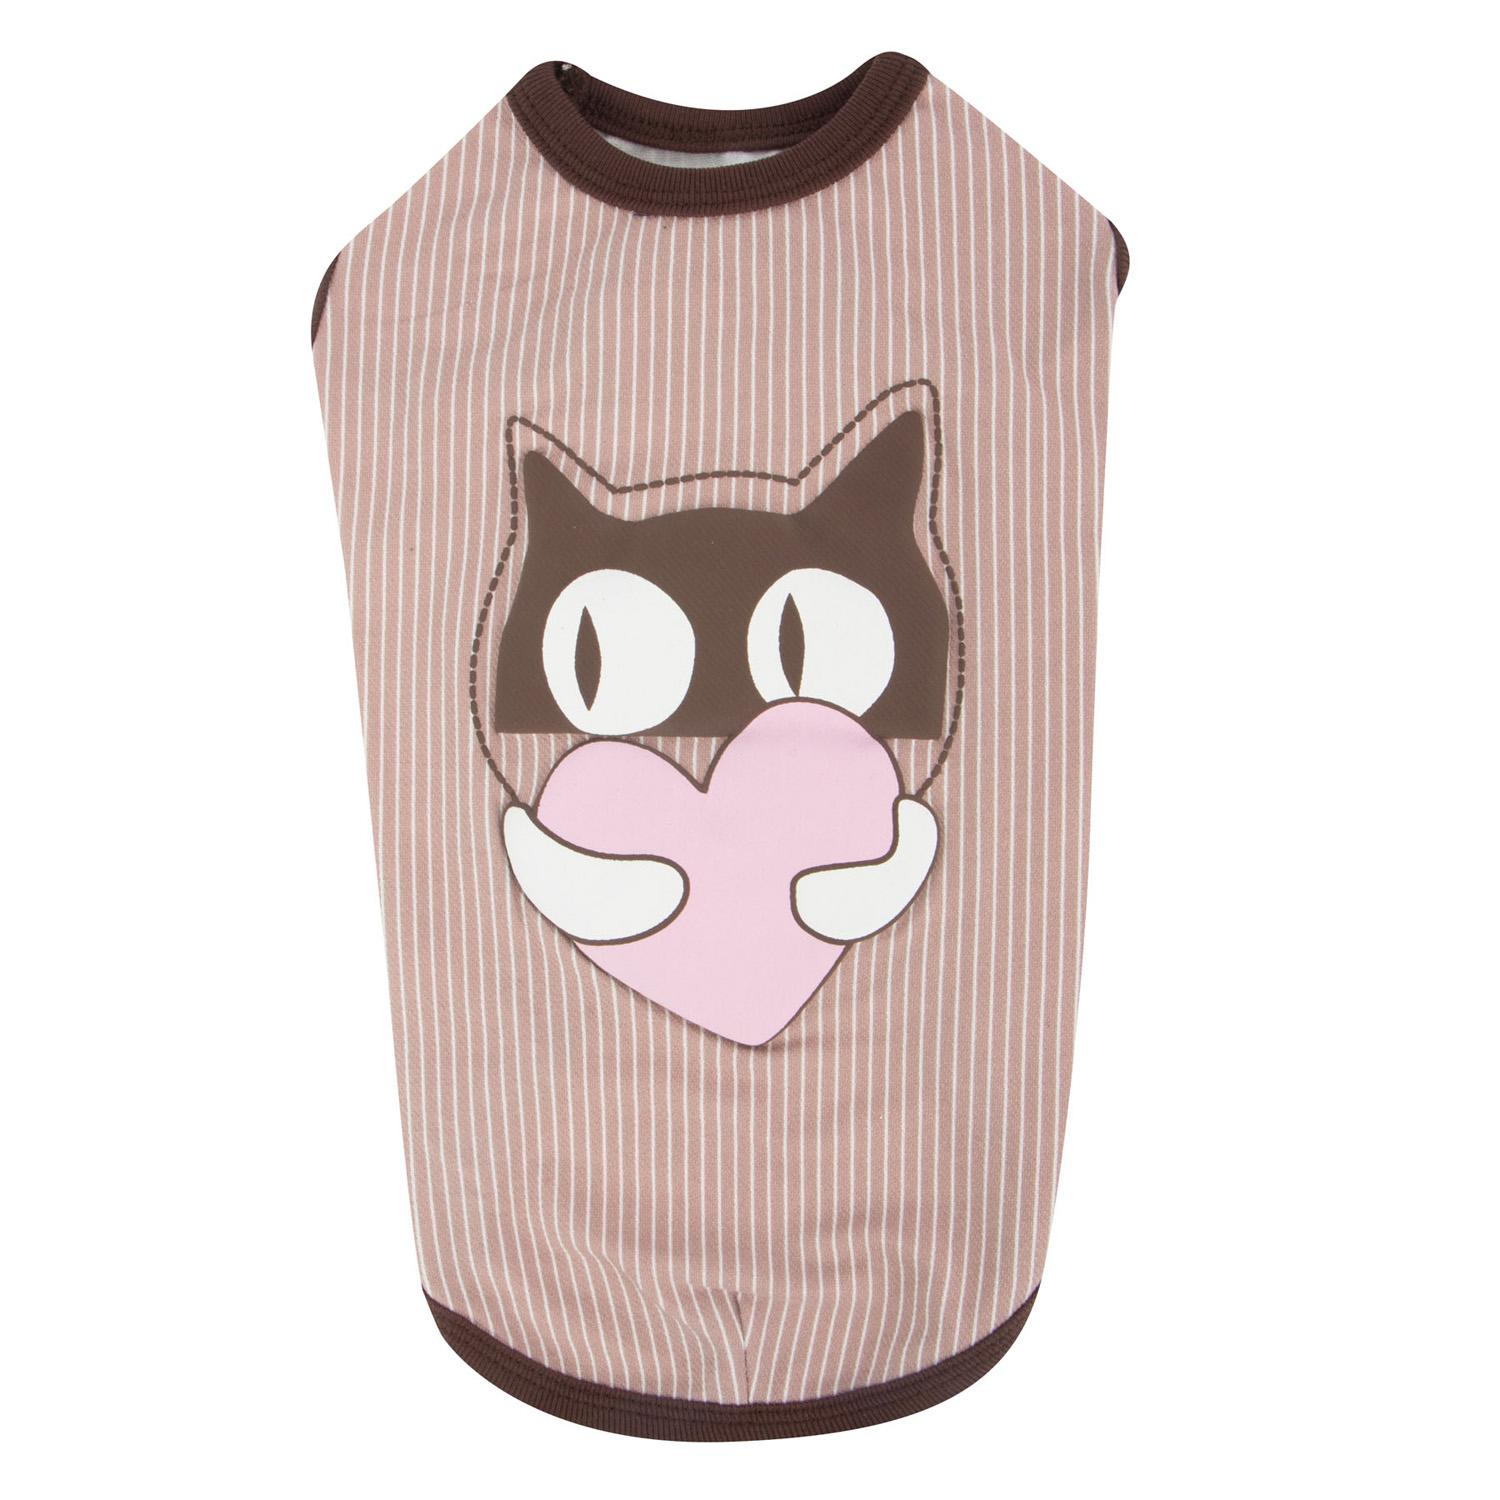 Kissie Cat Shirt by Catspia - Brown